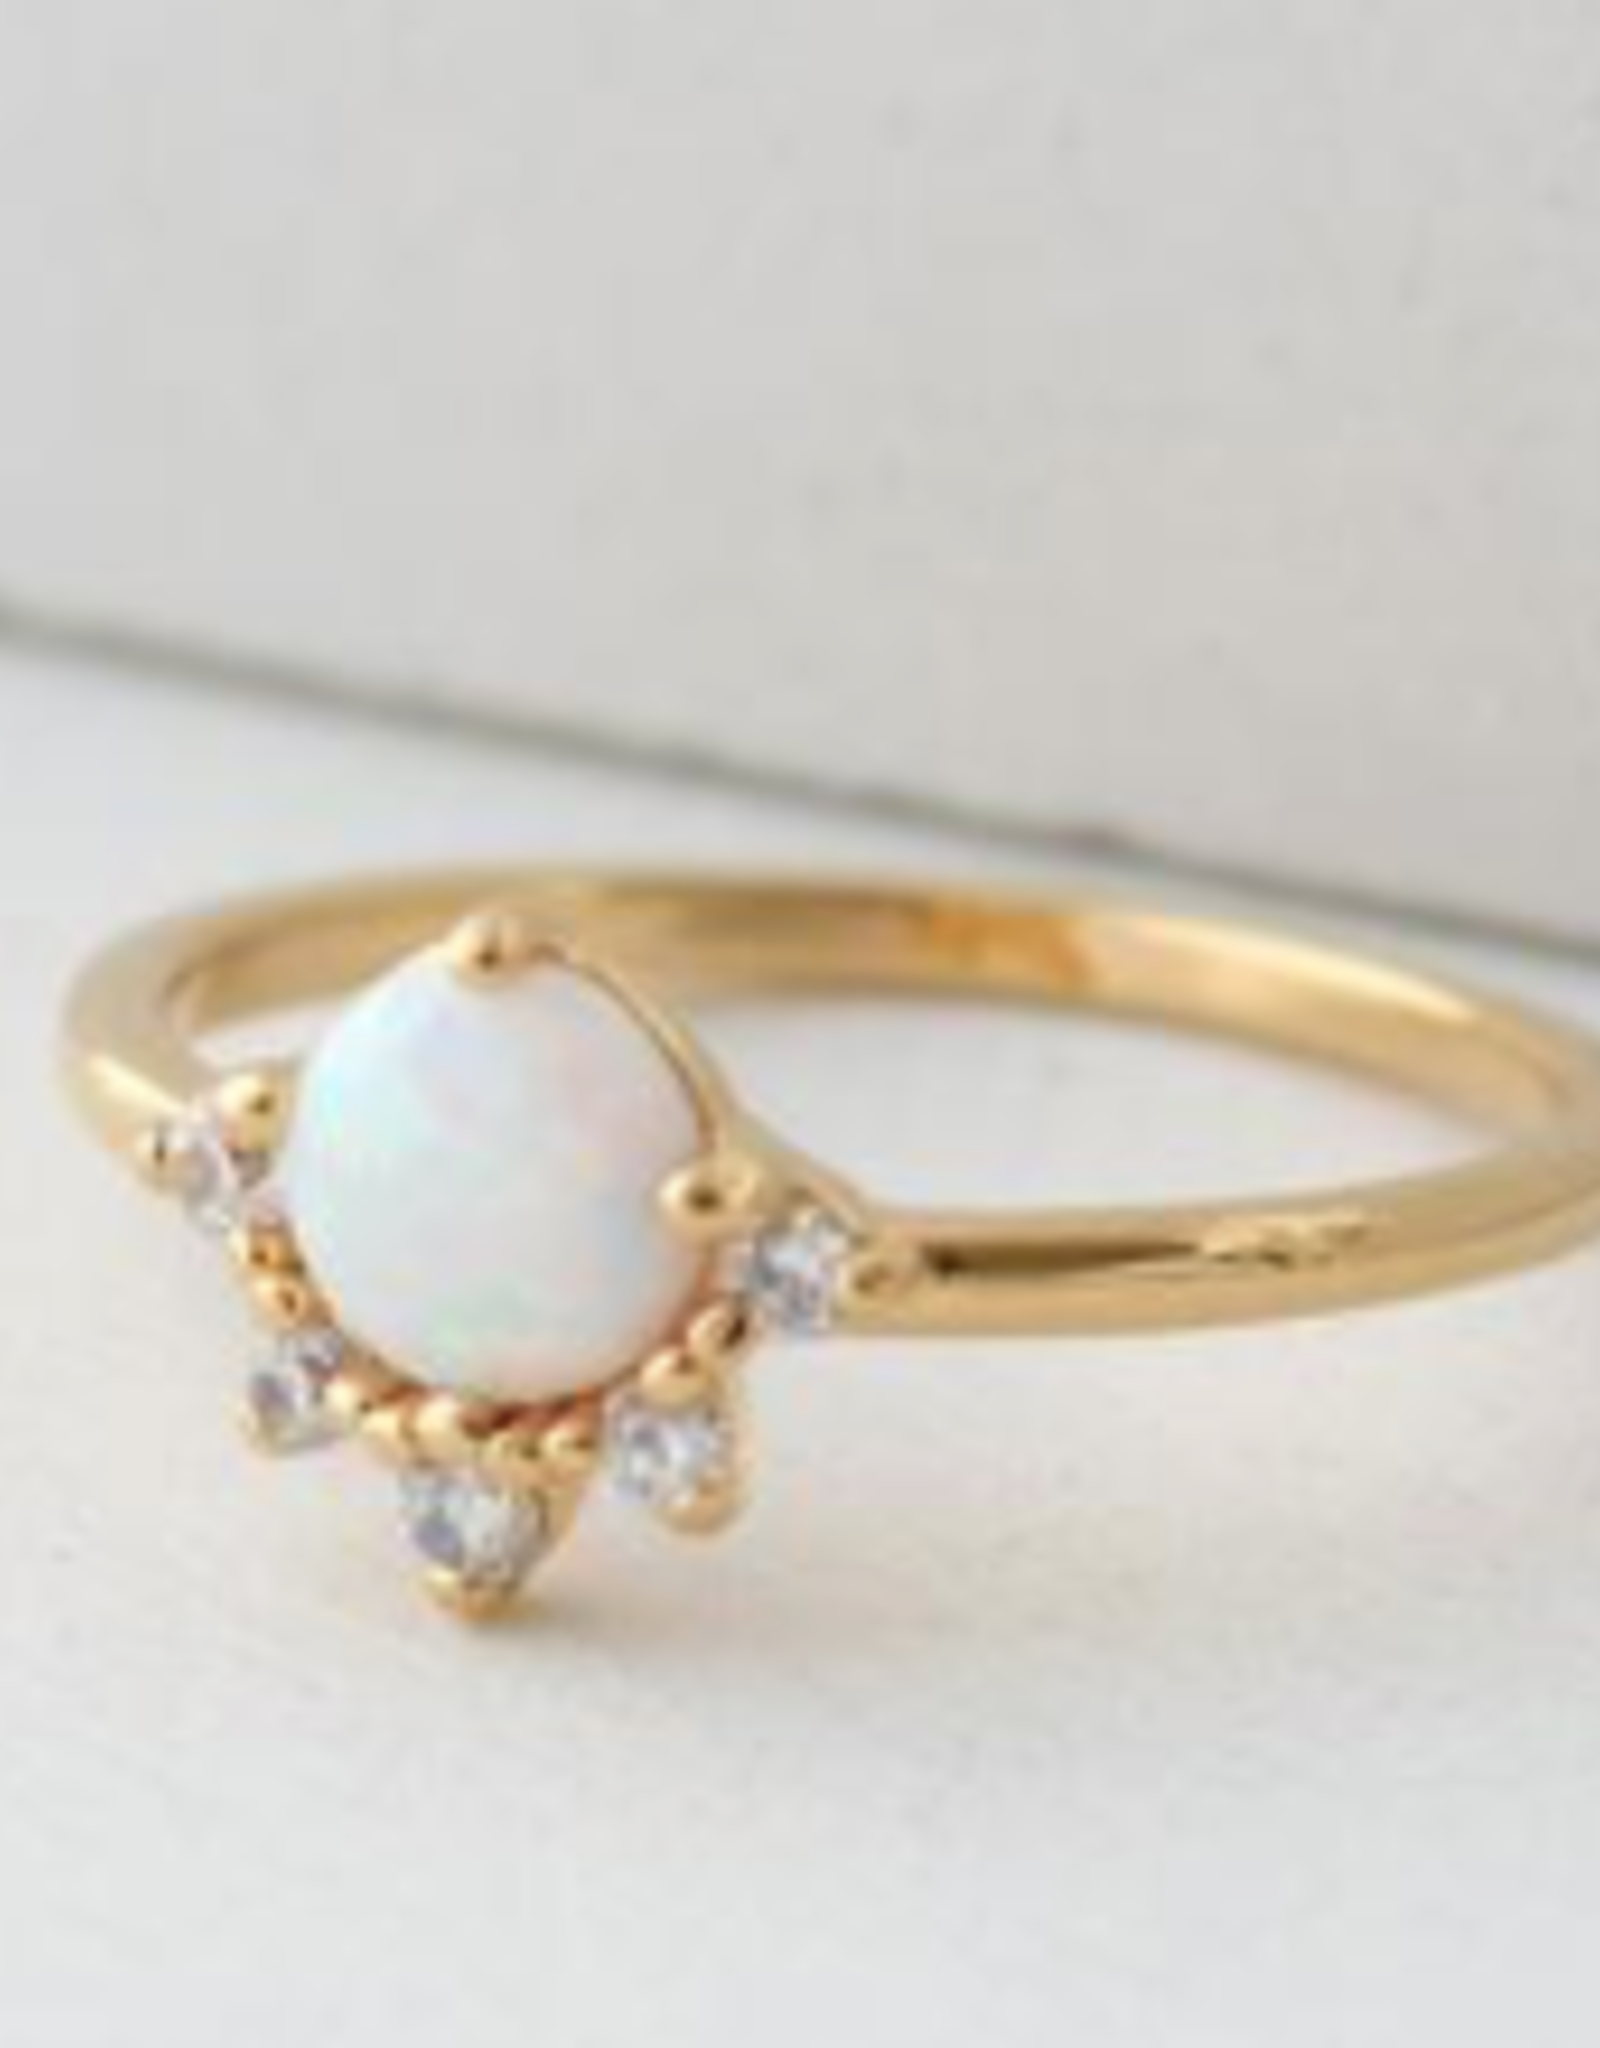 Ring, Opal/Gold, Juno, Size 6 Gold-plated Brass, Cubic Zirconia, Simulated Opal